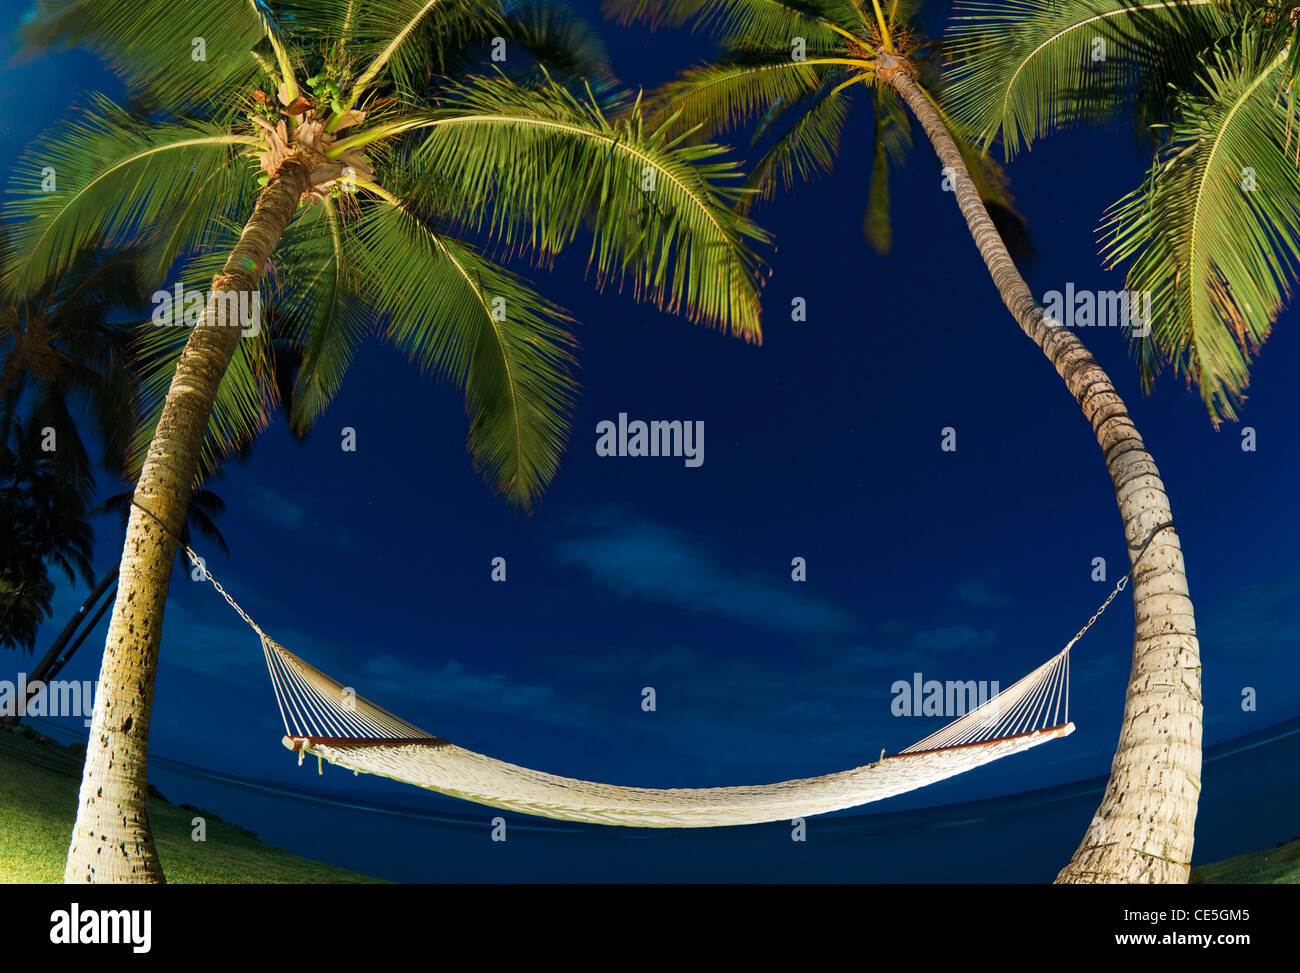 Tropical Night, Palm Trees and Hammock - Stock Image